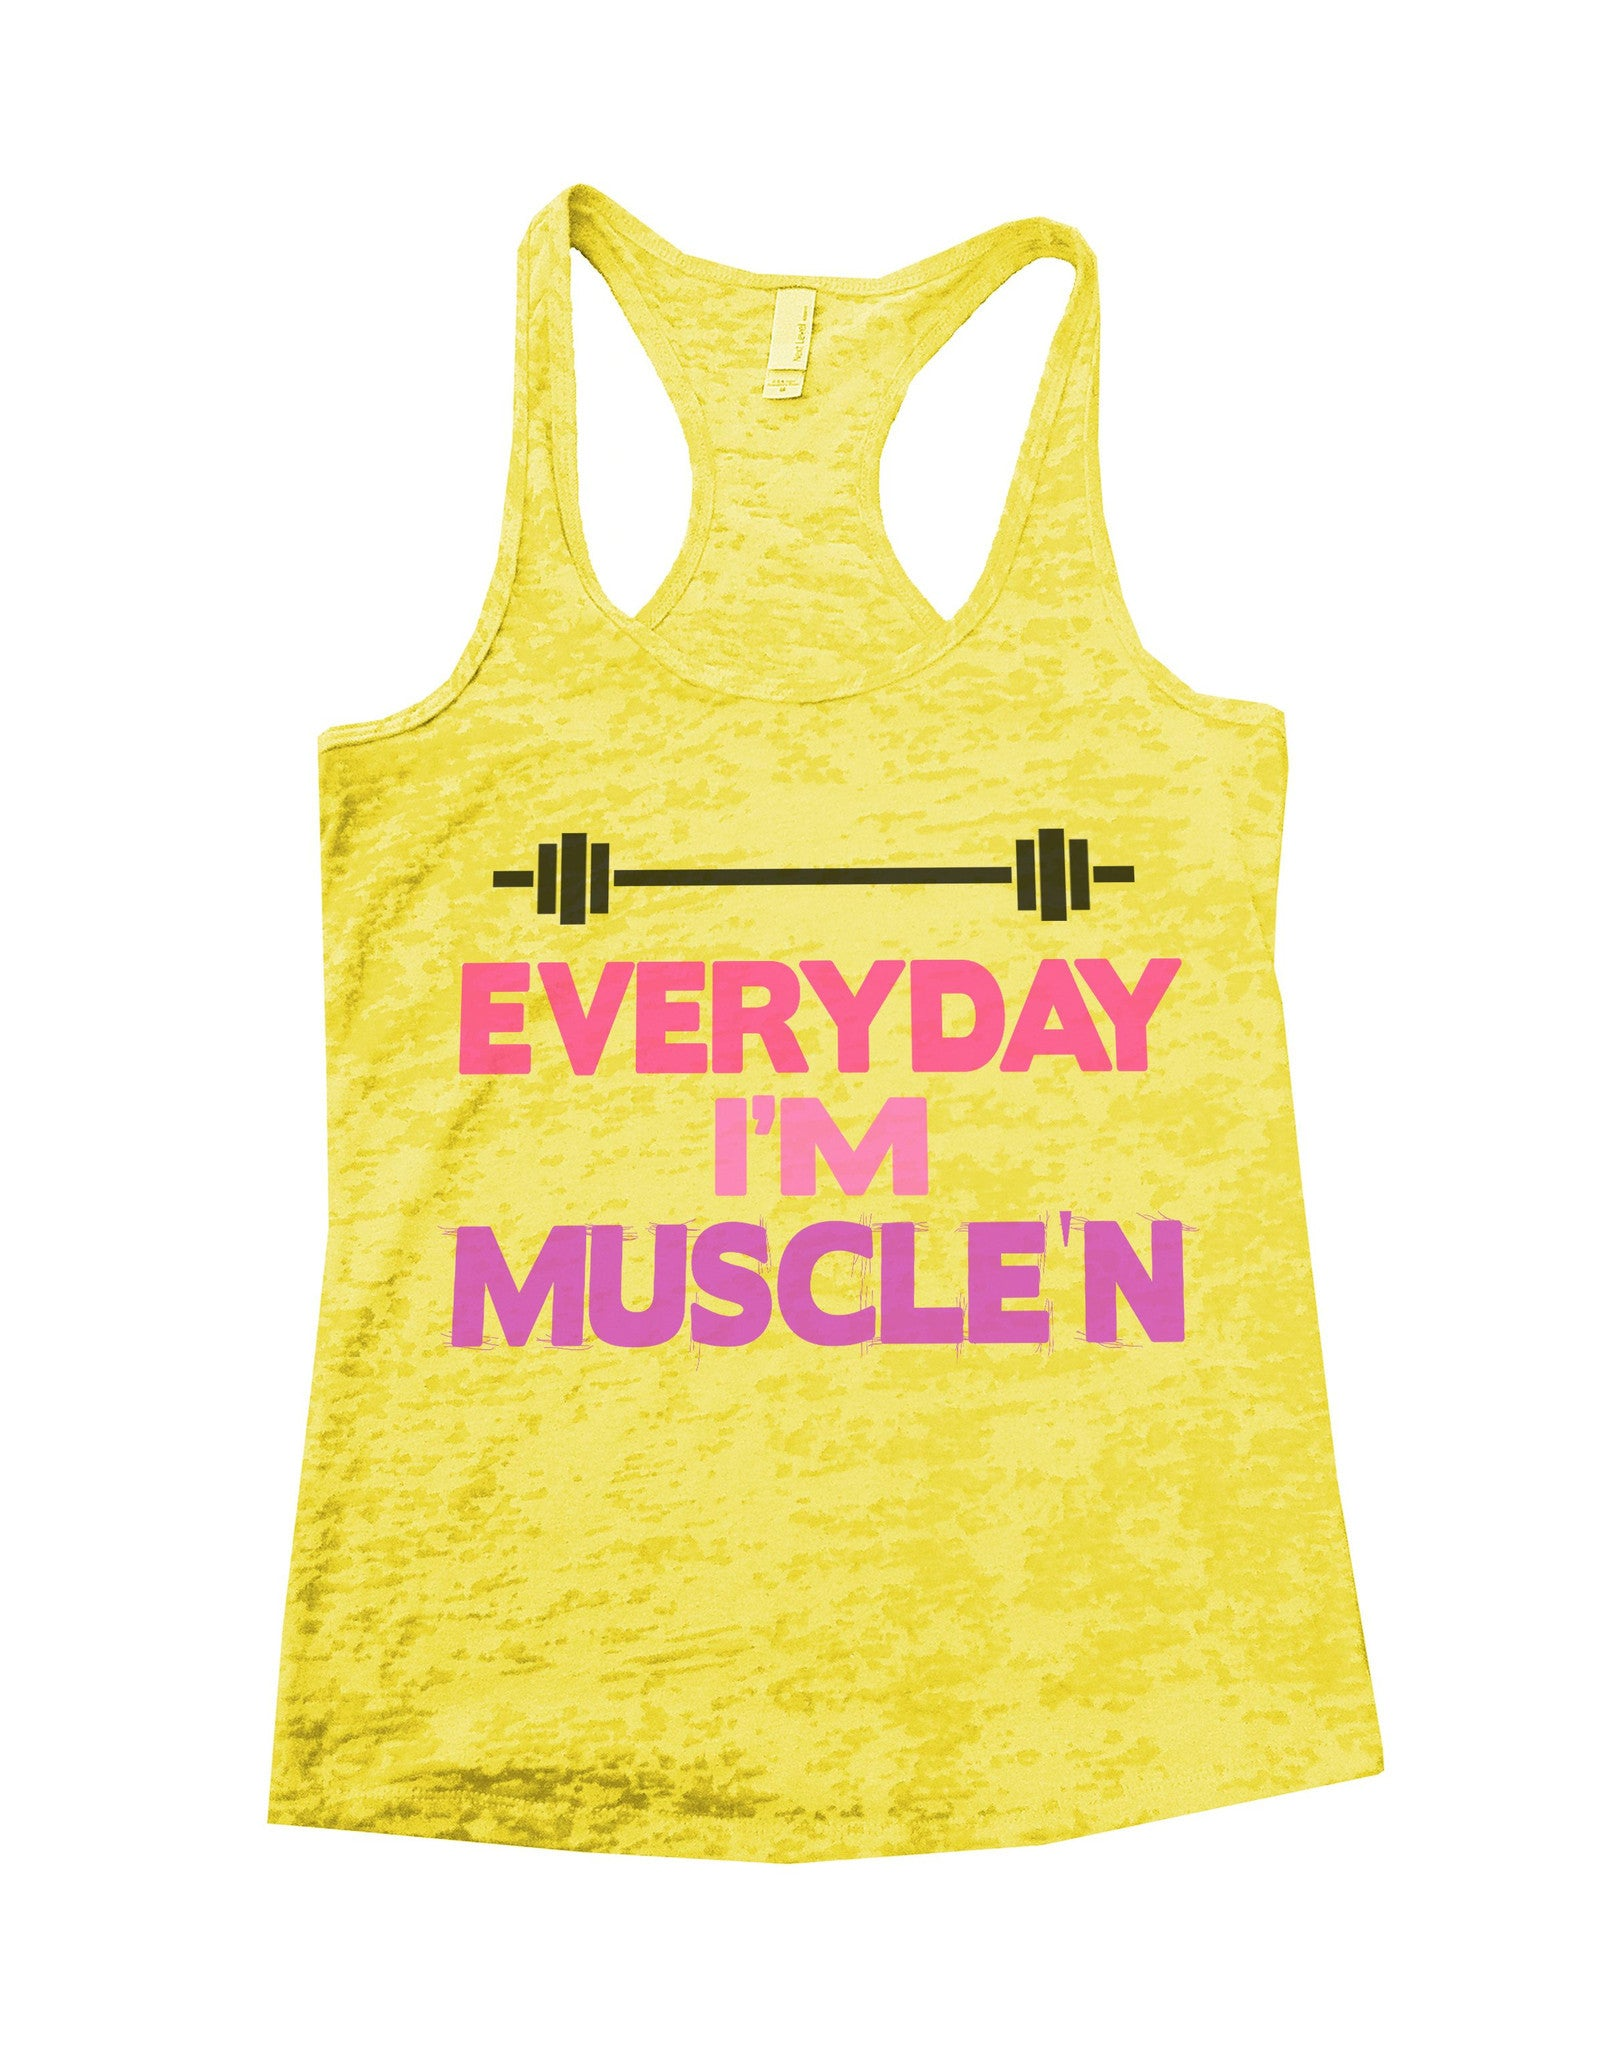 Everyday I'm Muscle'n Burnout Tank Top By BurnoutTankTops.com - 636 - Funny Shirts Tank Tops Burnouts and Triblends  - 4